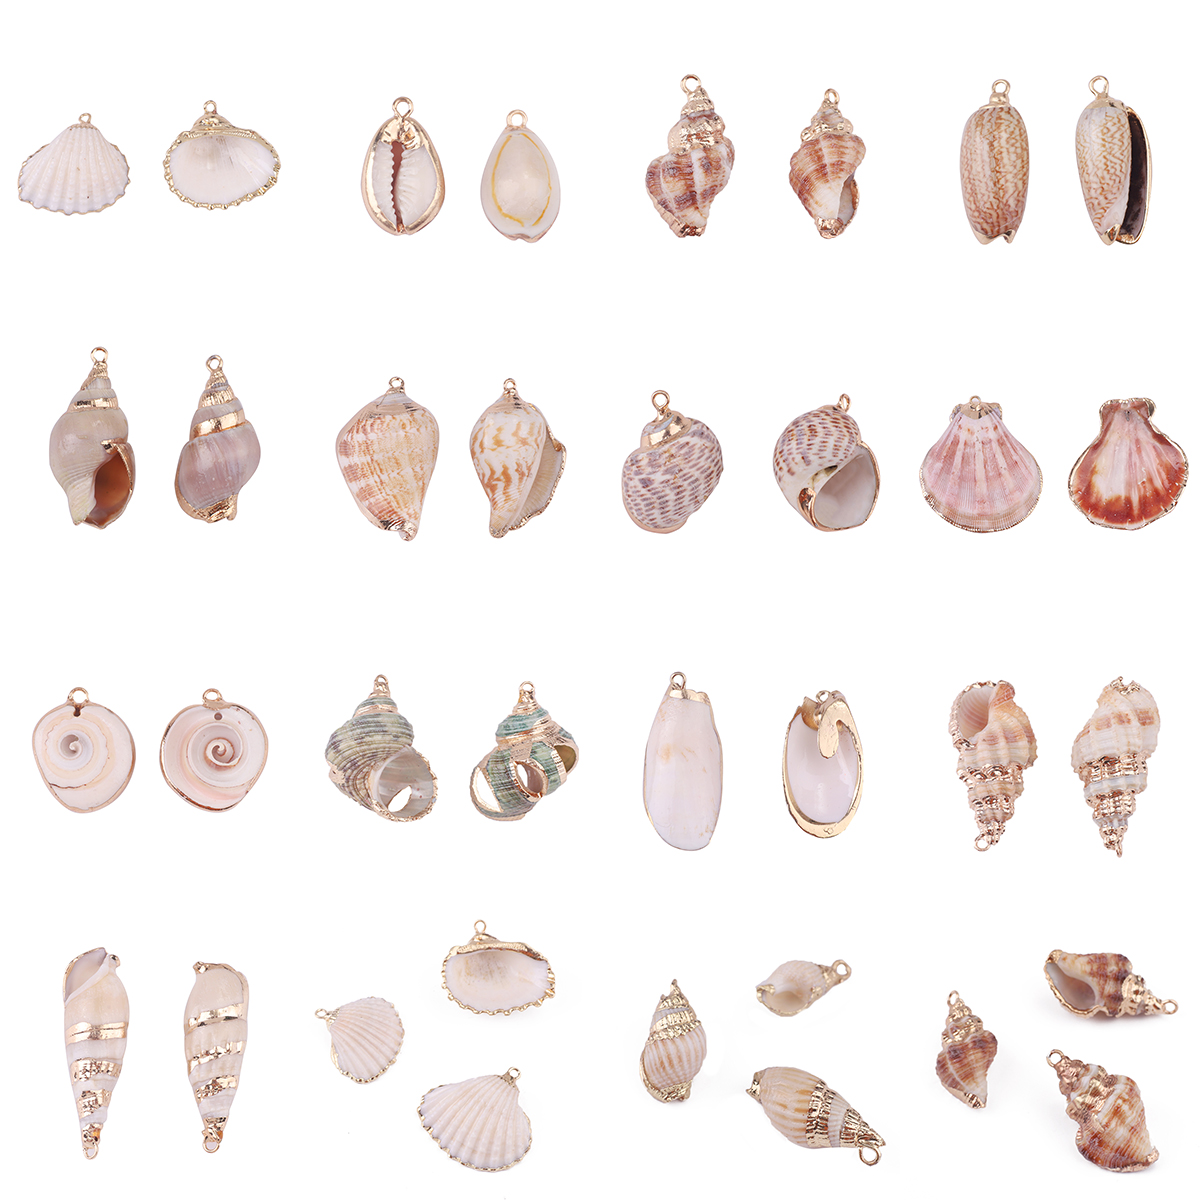 2pcs Natural Shell Pendant Conch Sea Shell Charms Pendant For DIY Earring Necklaces Pendant Jewelry Making Handmade Accessories